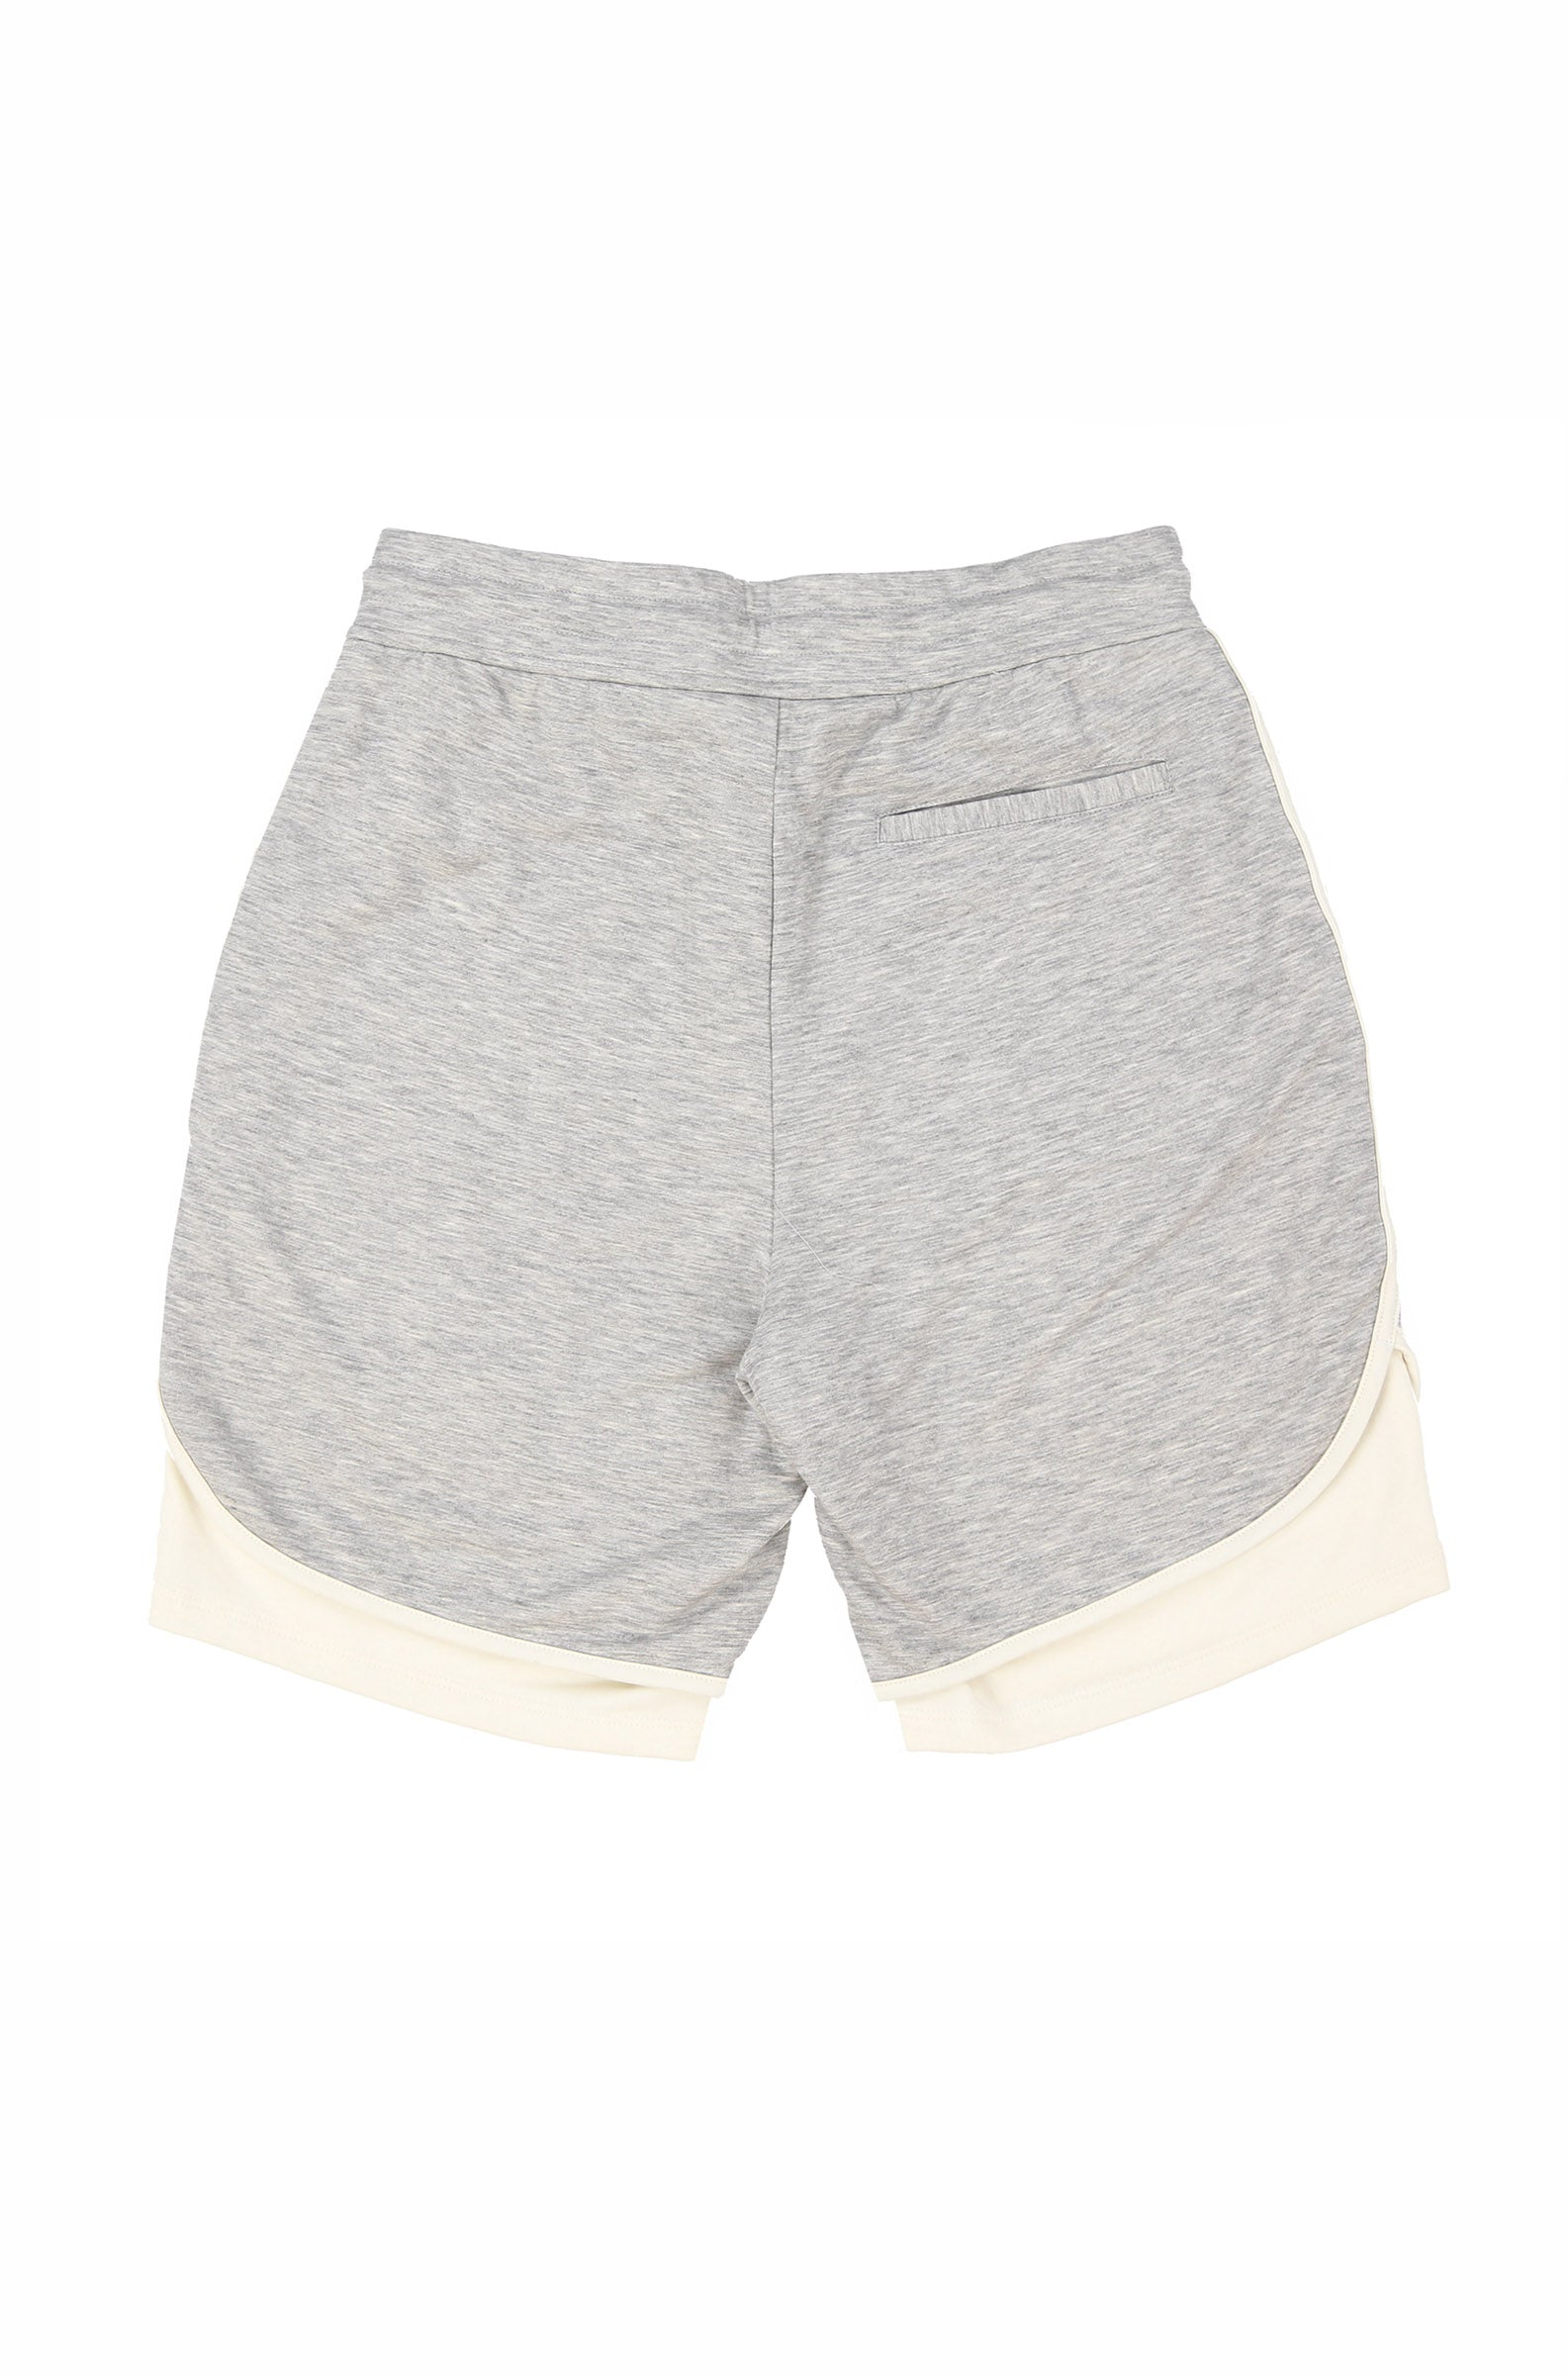 FLUSHING MEADOWS SHORTS (GREY MELANGE)